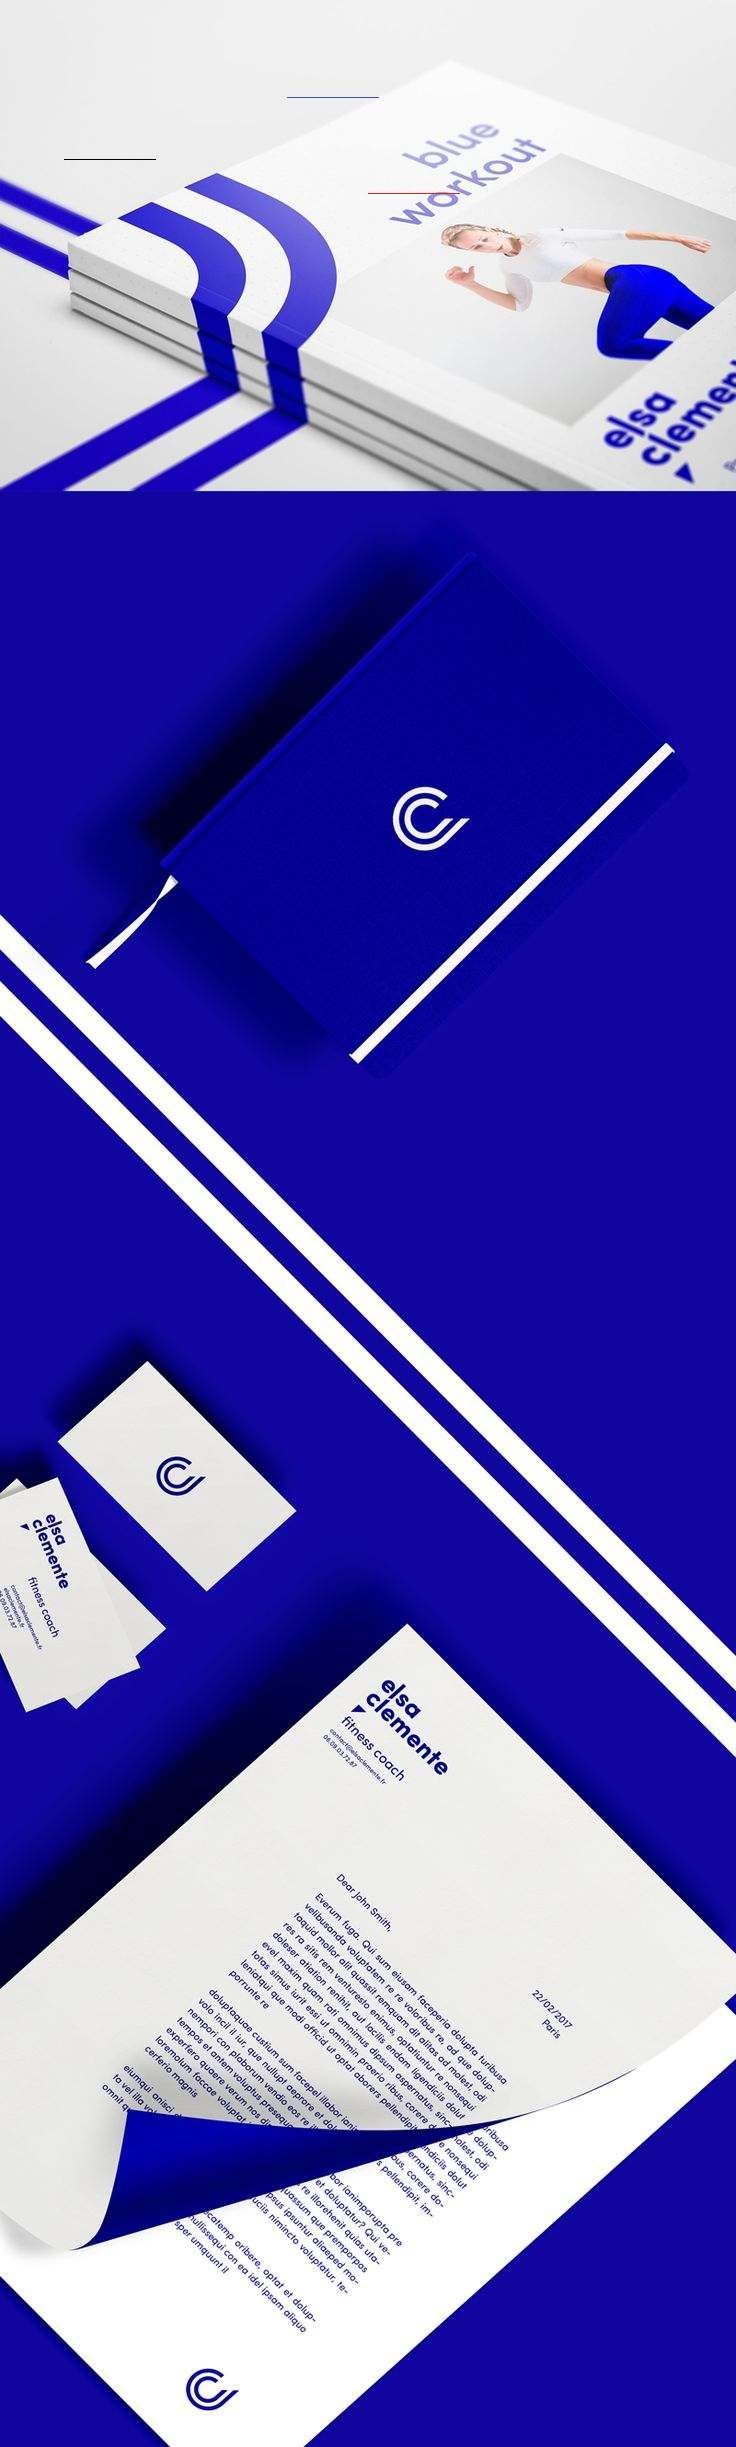 From concept to visual identity, including books, website and photo shootings, Hermits received cart...